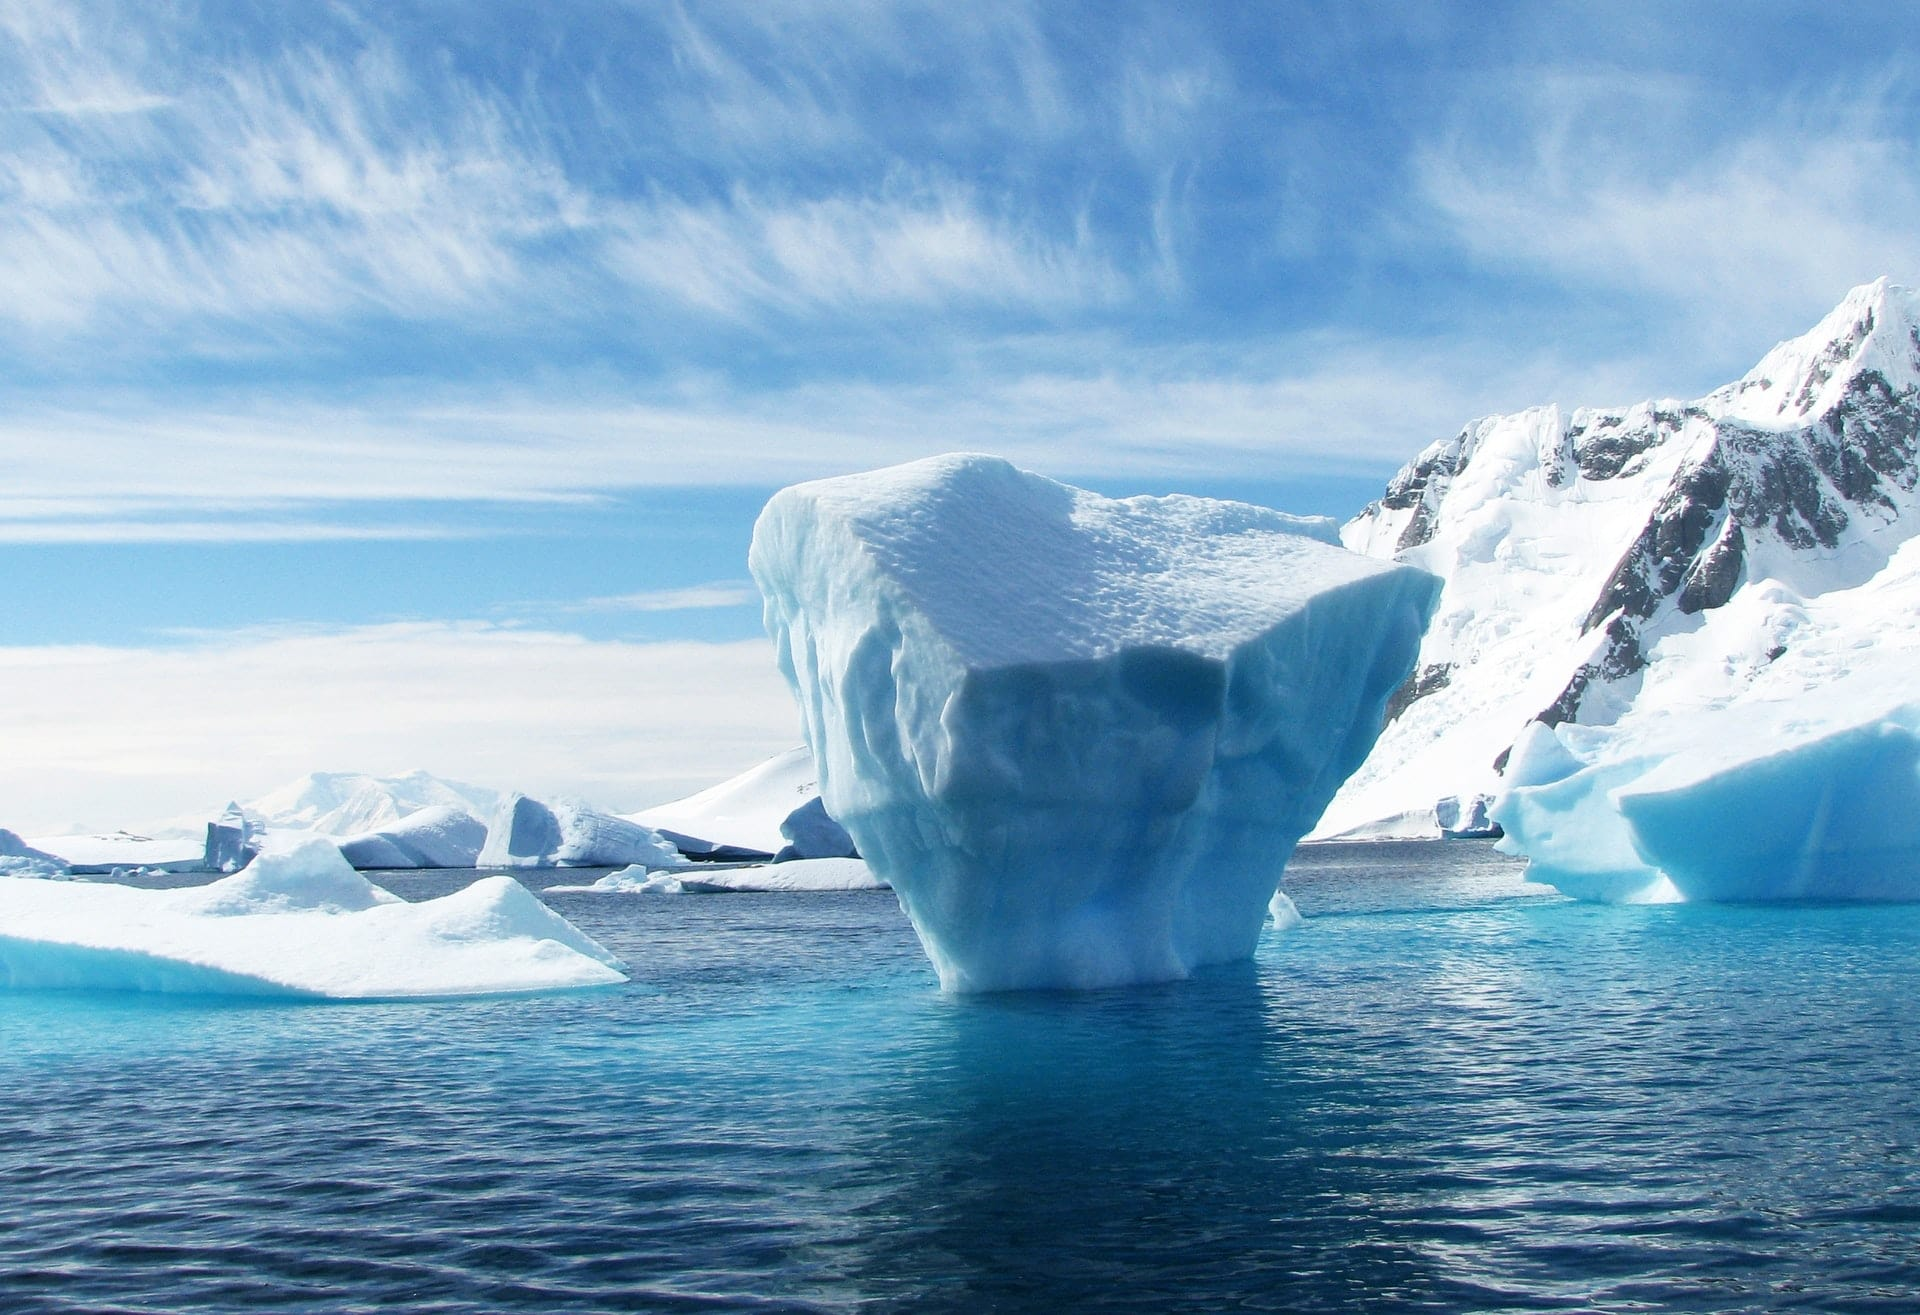 Is it illegal to go to Antarctica?